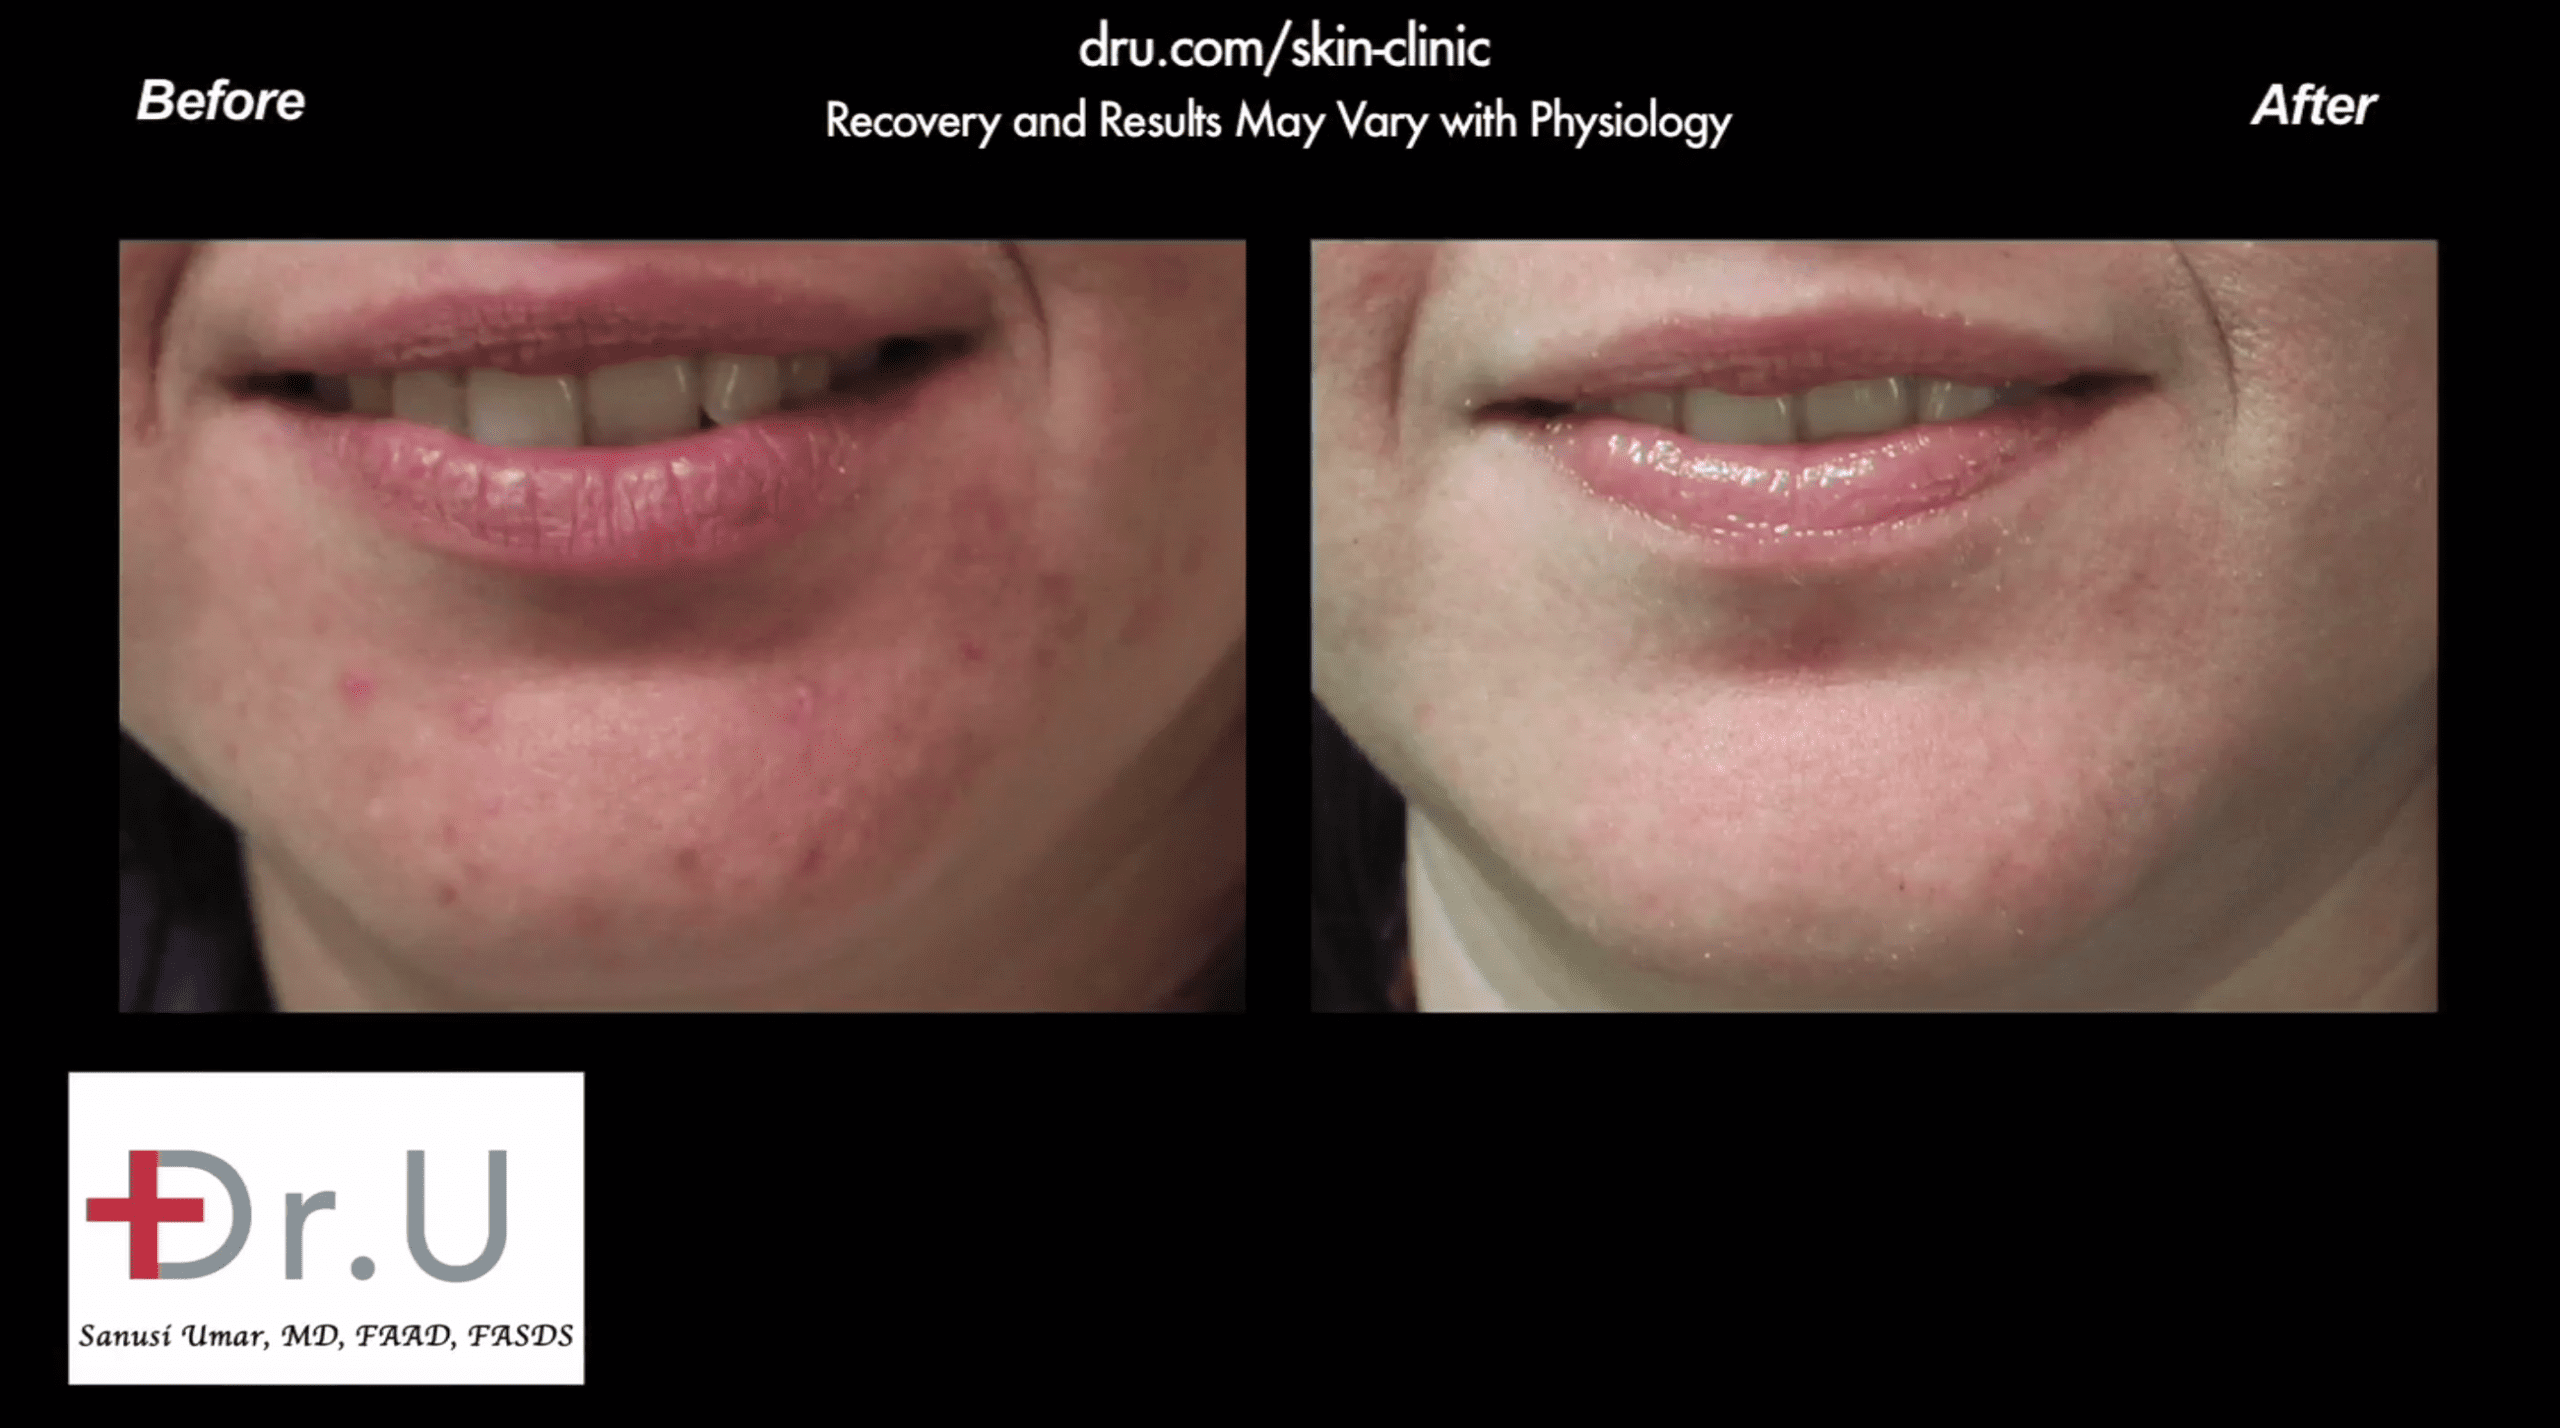 Before and after patient received one of the best acne treatment products for adults.